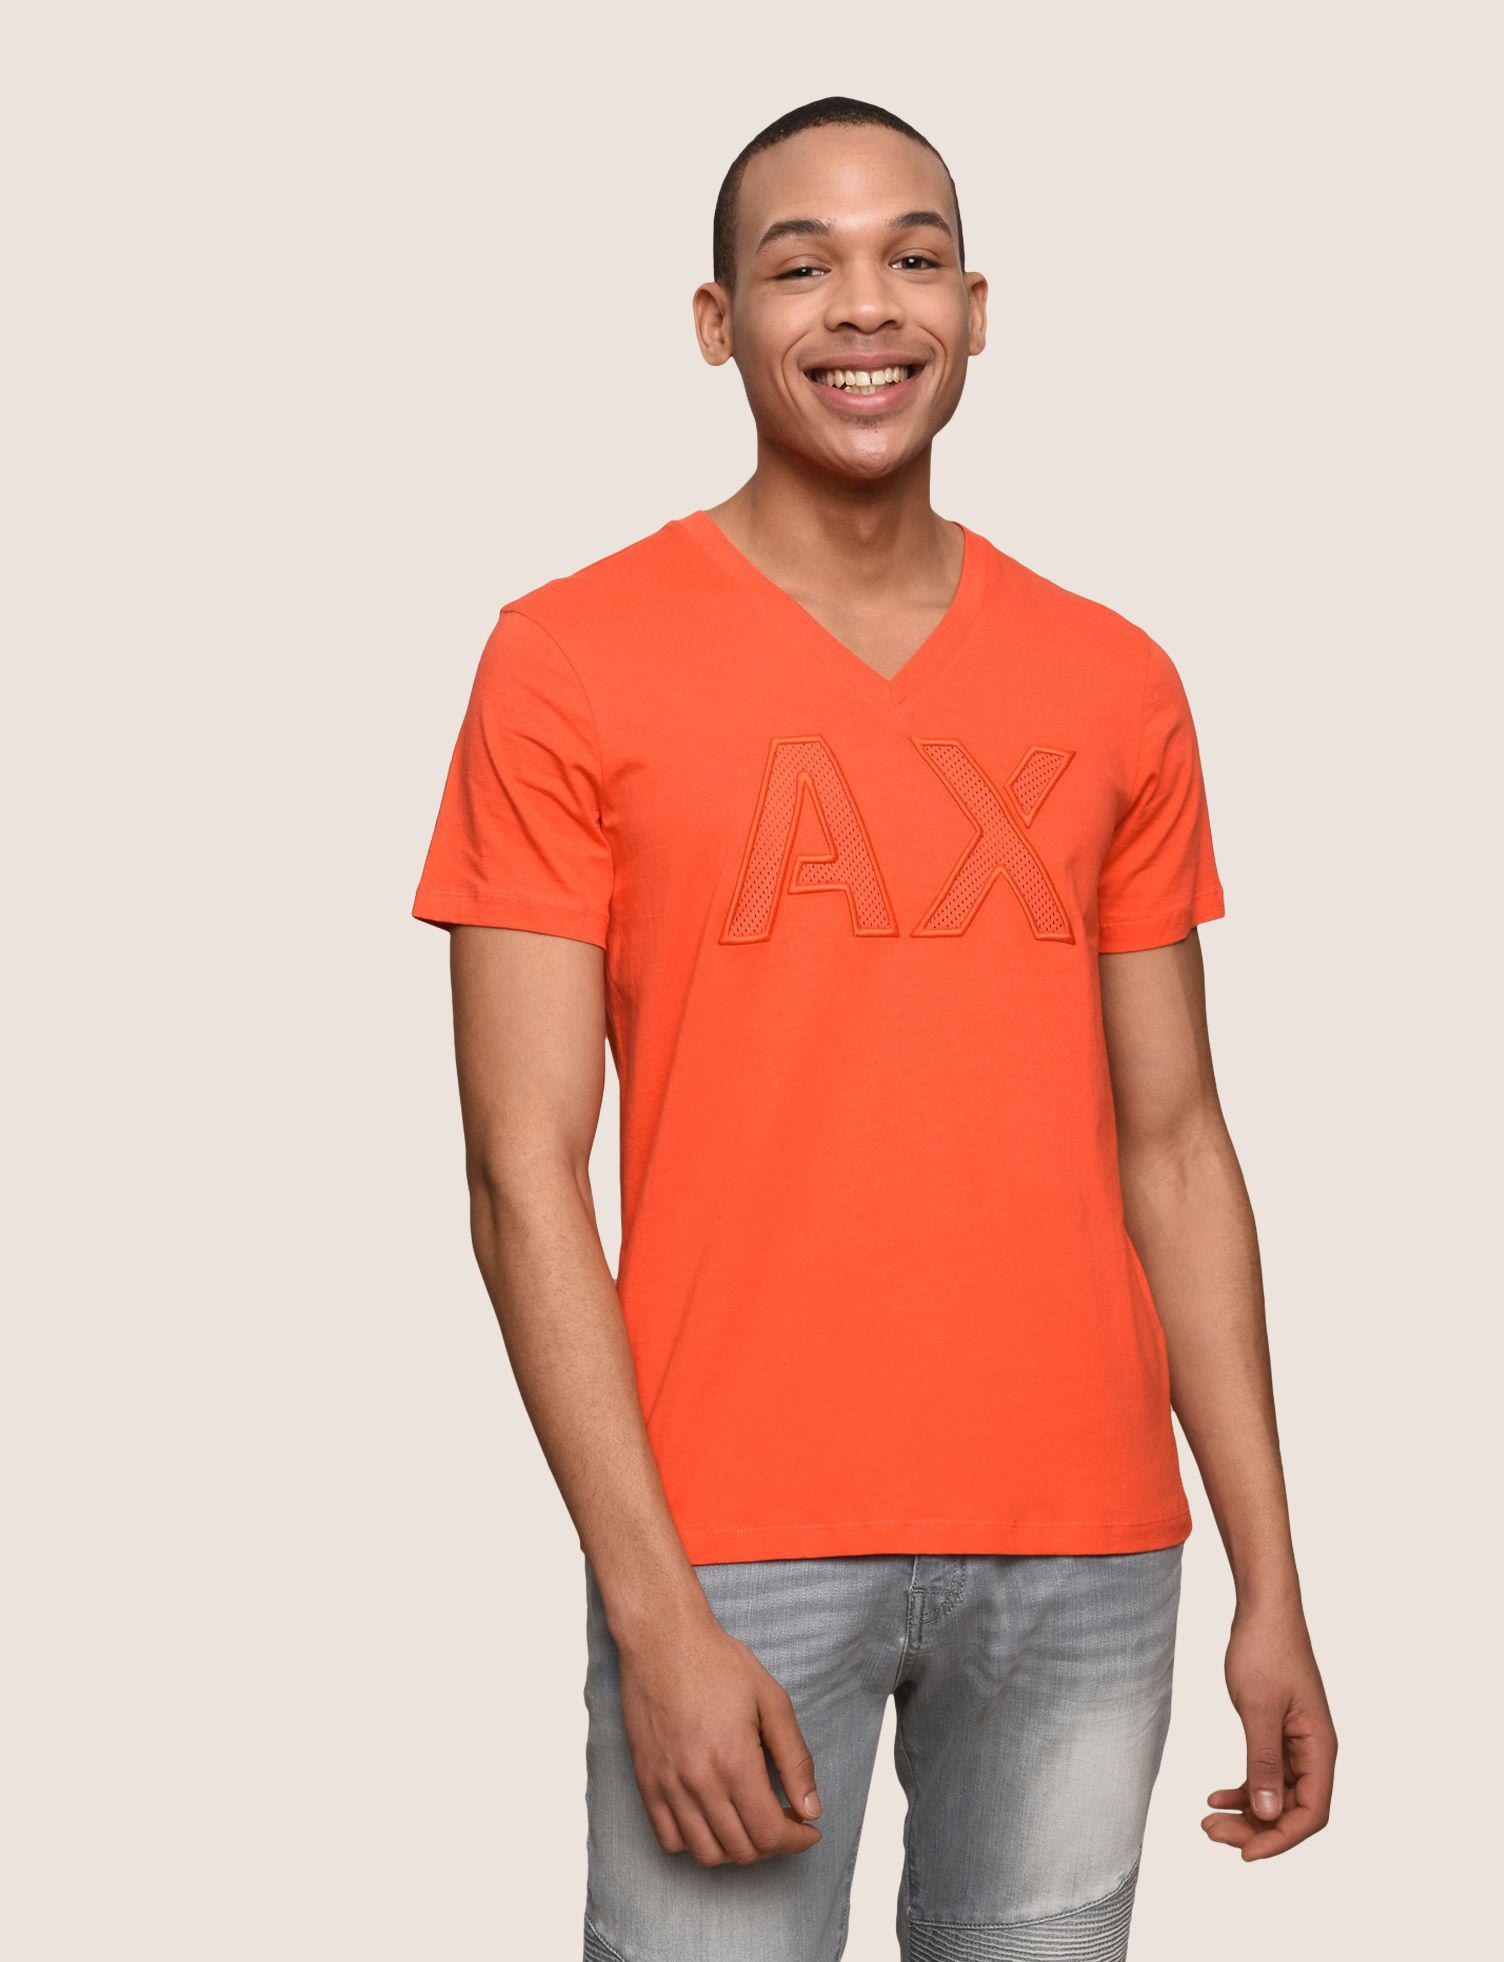 ce0f82ae368af8 Lyst - Armani Exchange Mesh Logo V-neck Tee in Orange for Men